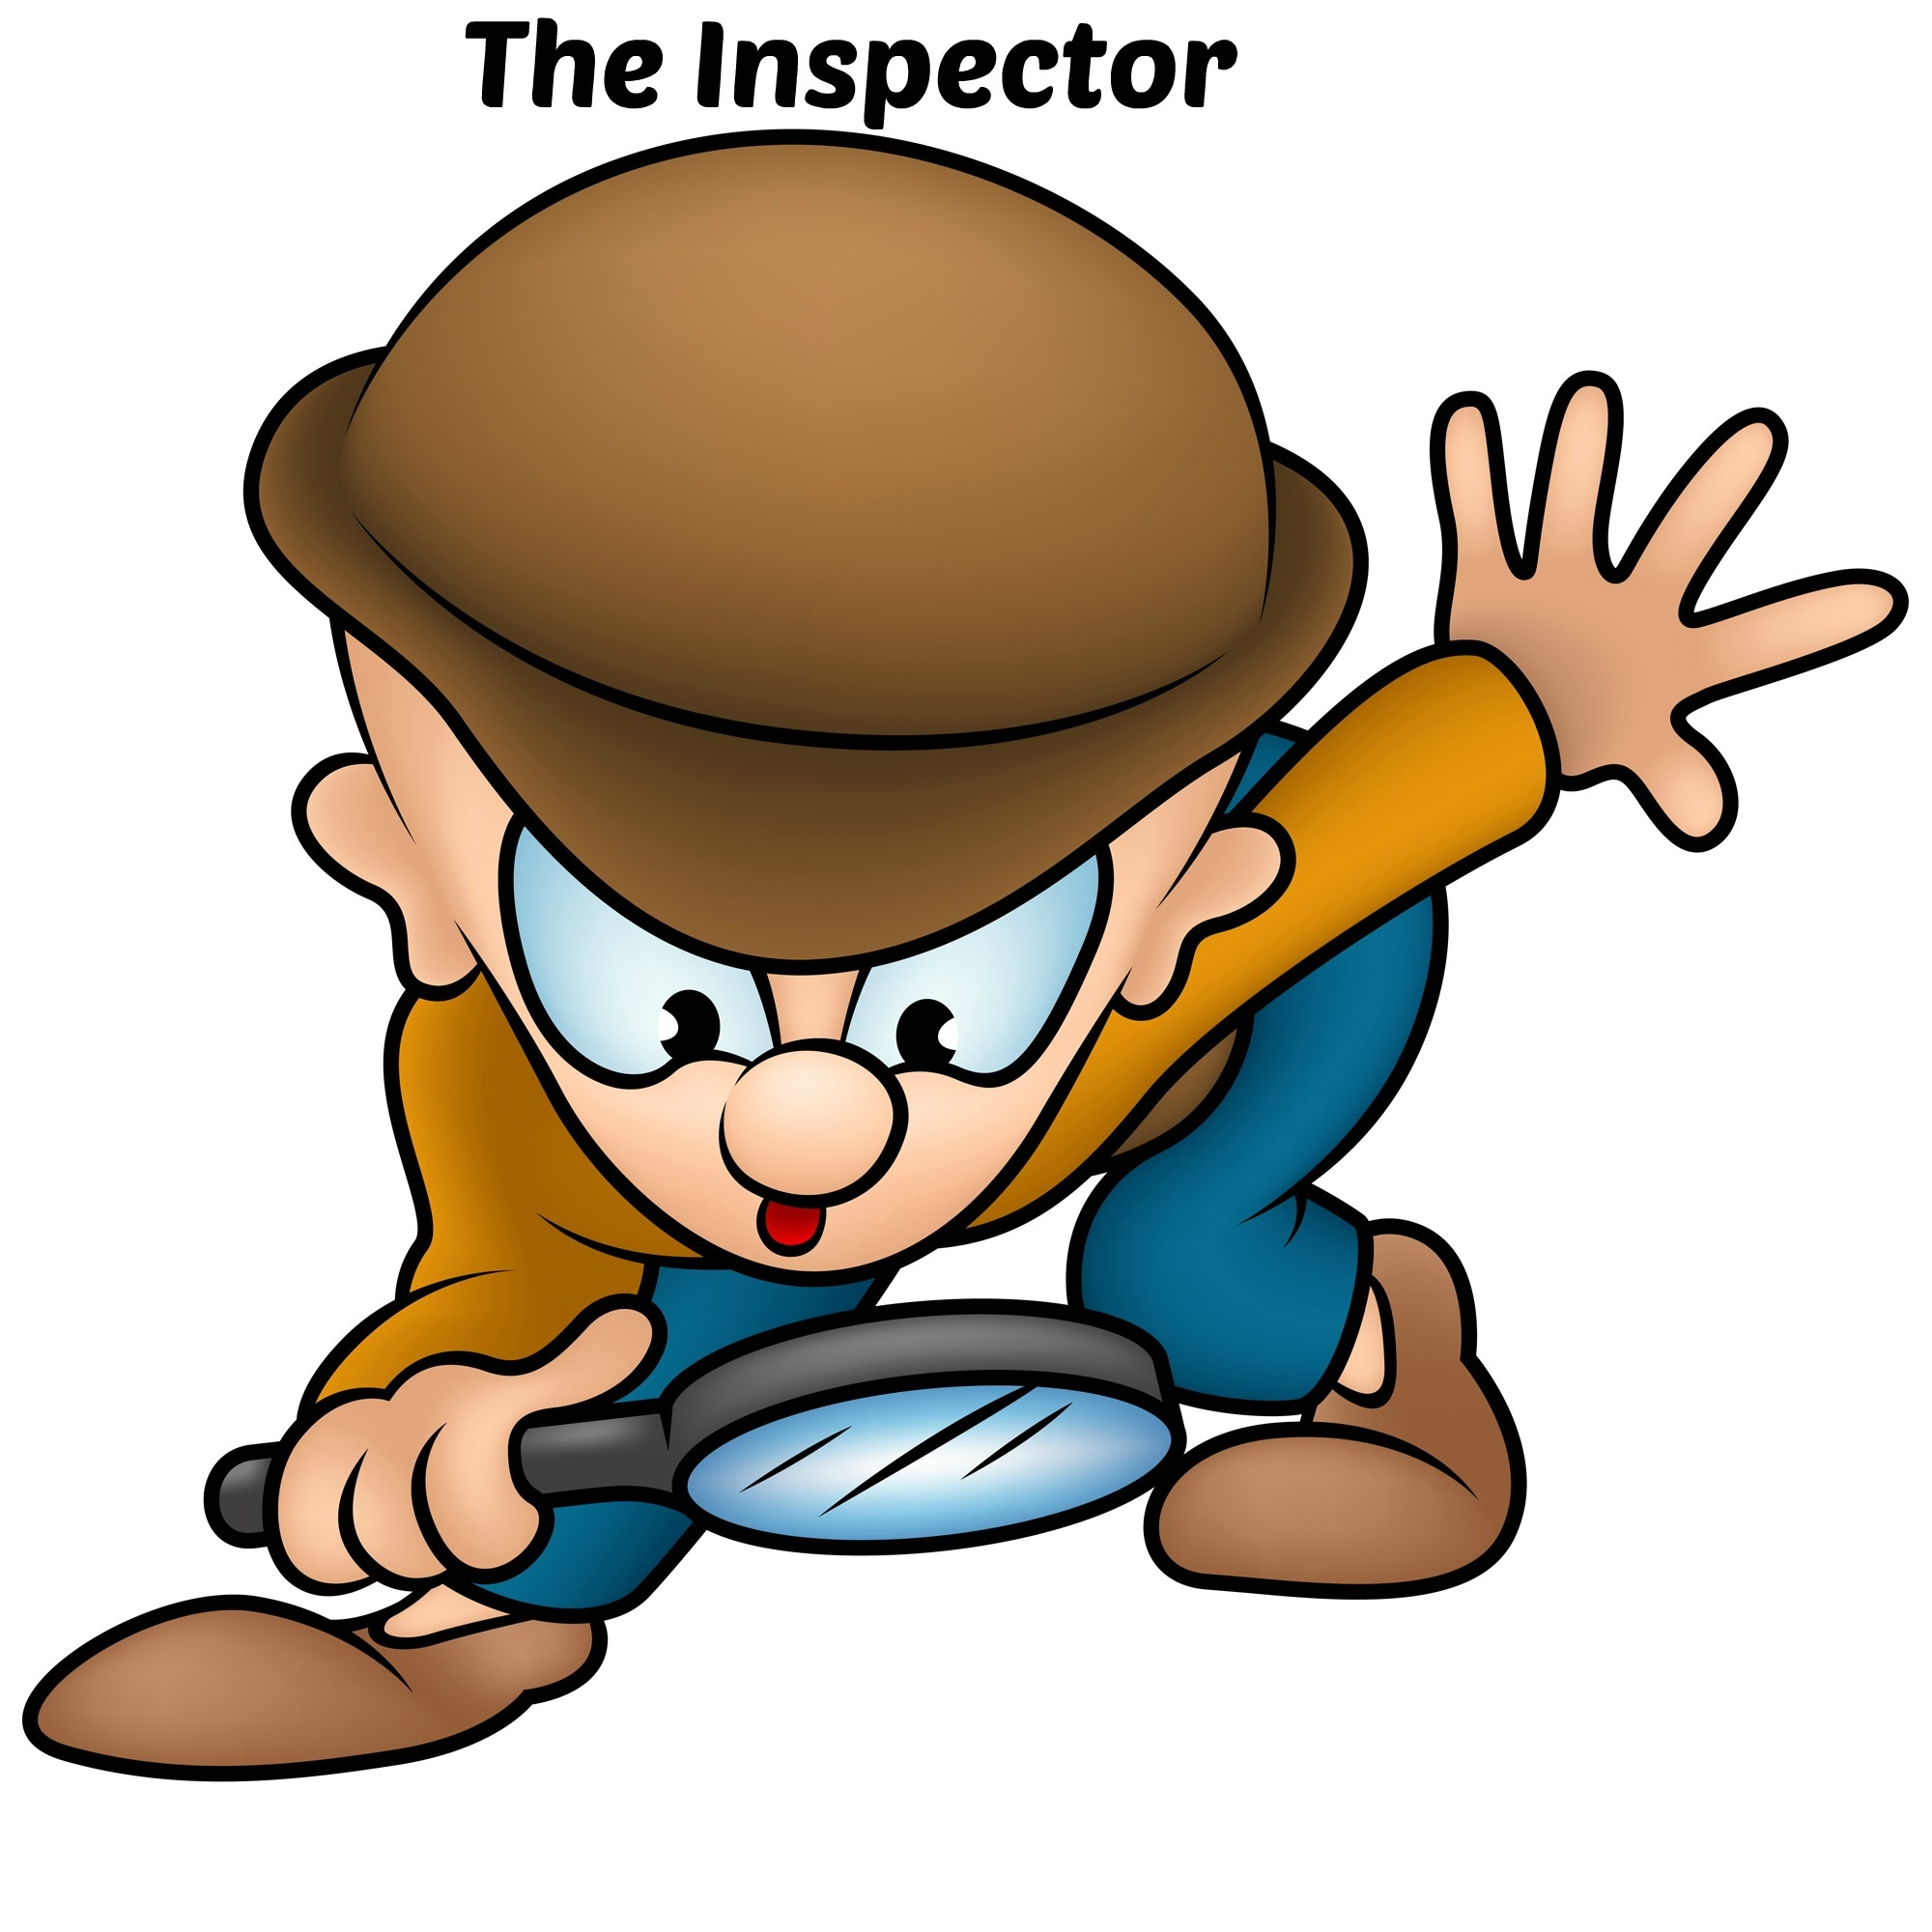 The Inspector Labeled